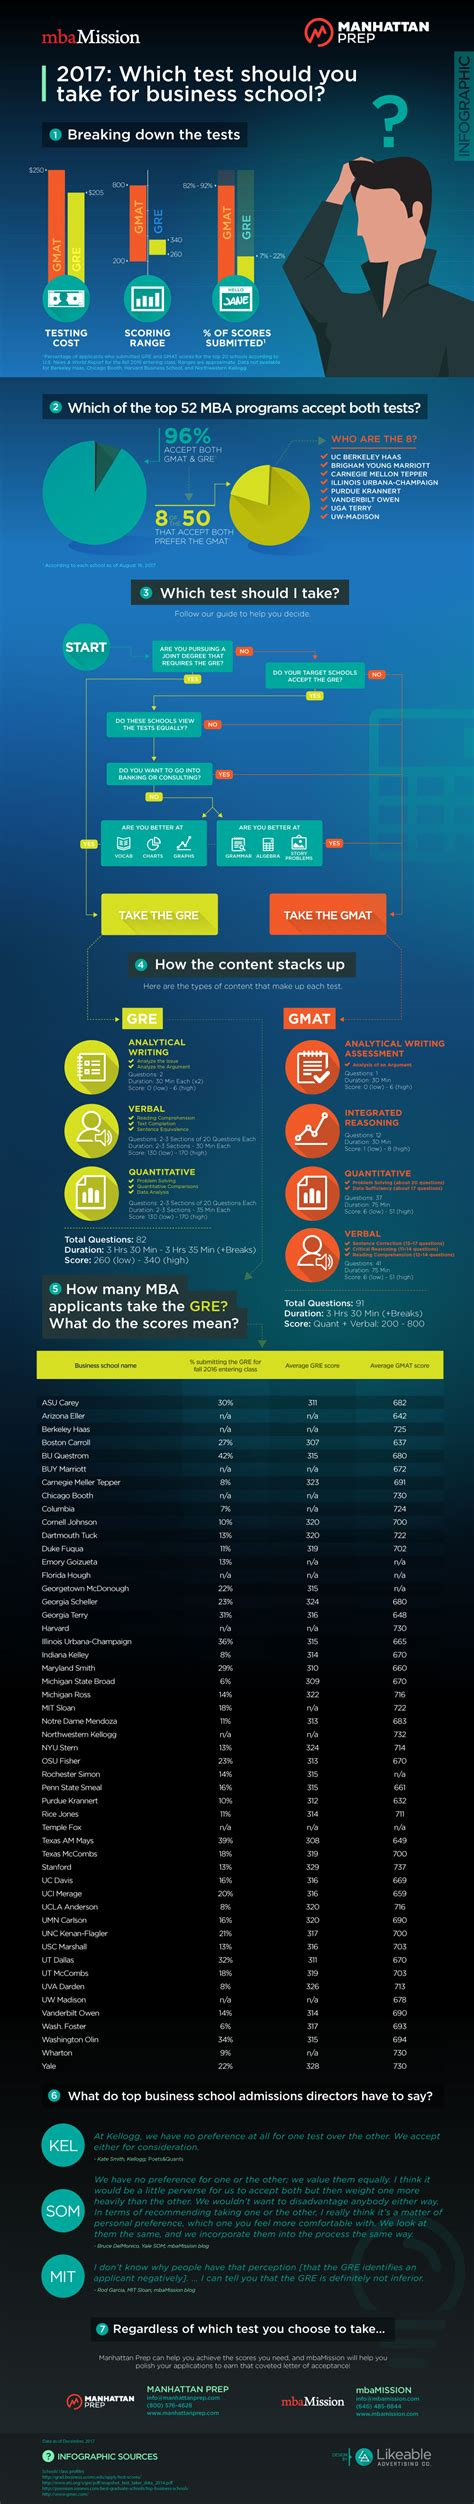 Kellogg Mba Gre Score mbamission and manhattan prep s gmat vs gre infographic